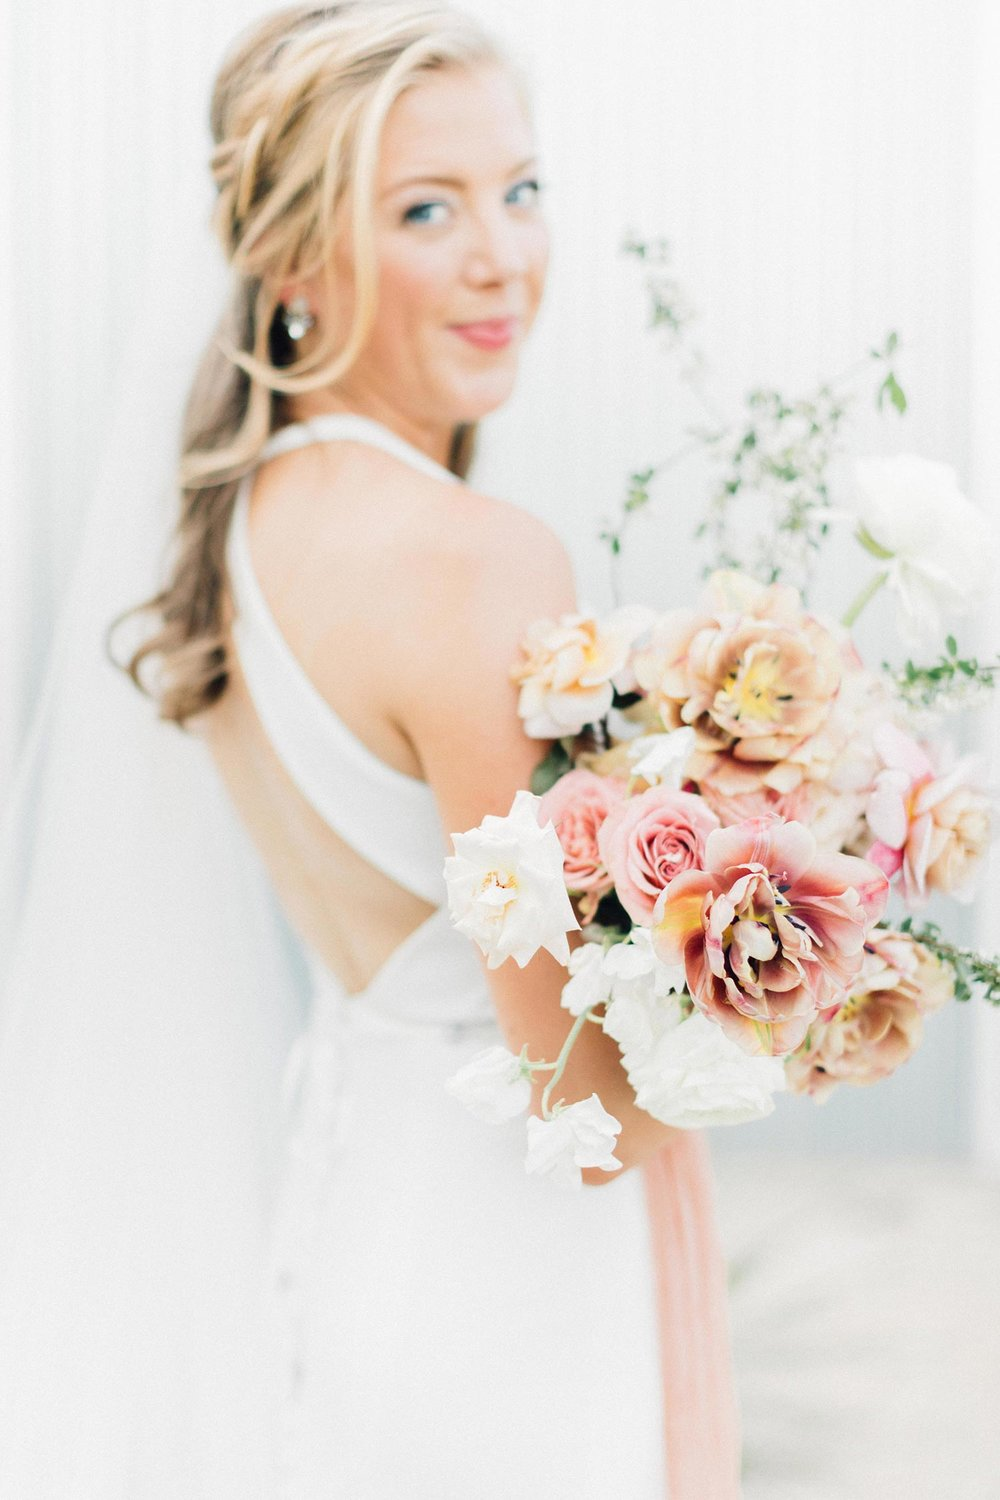 Floral design & elated bride by Color Theory Collective